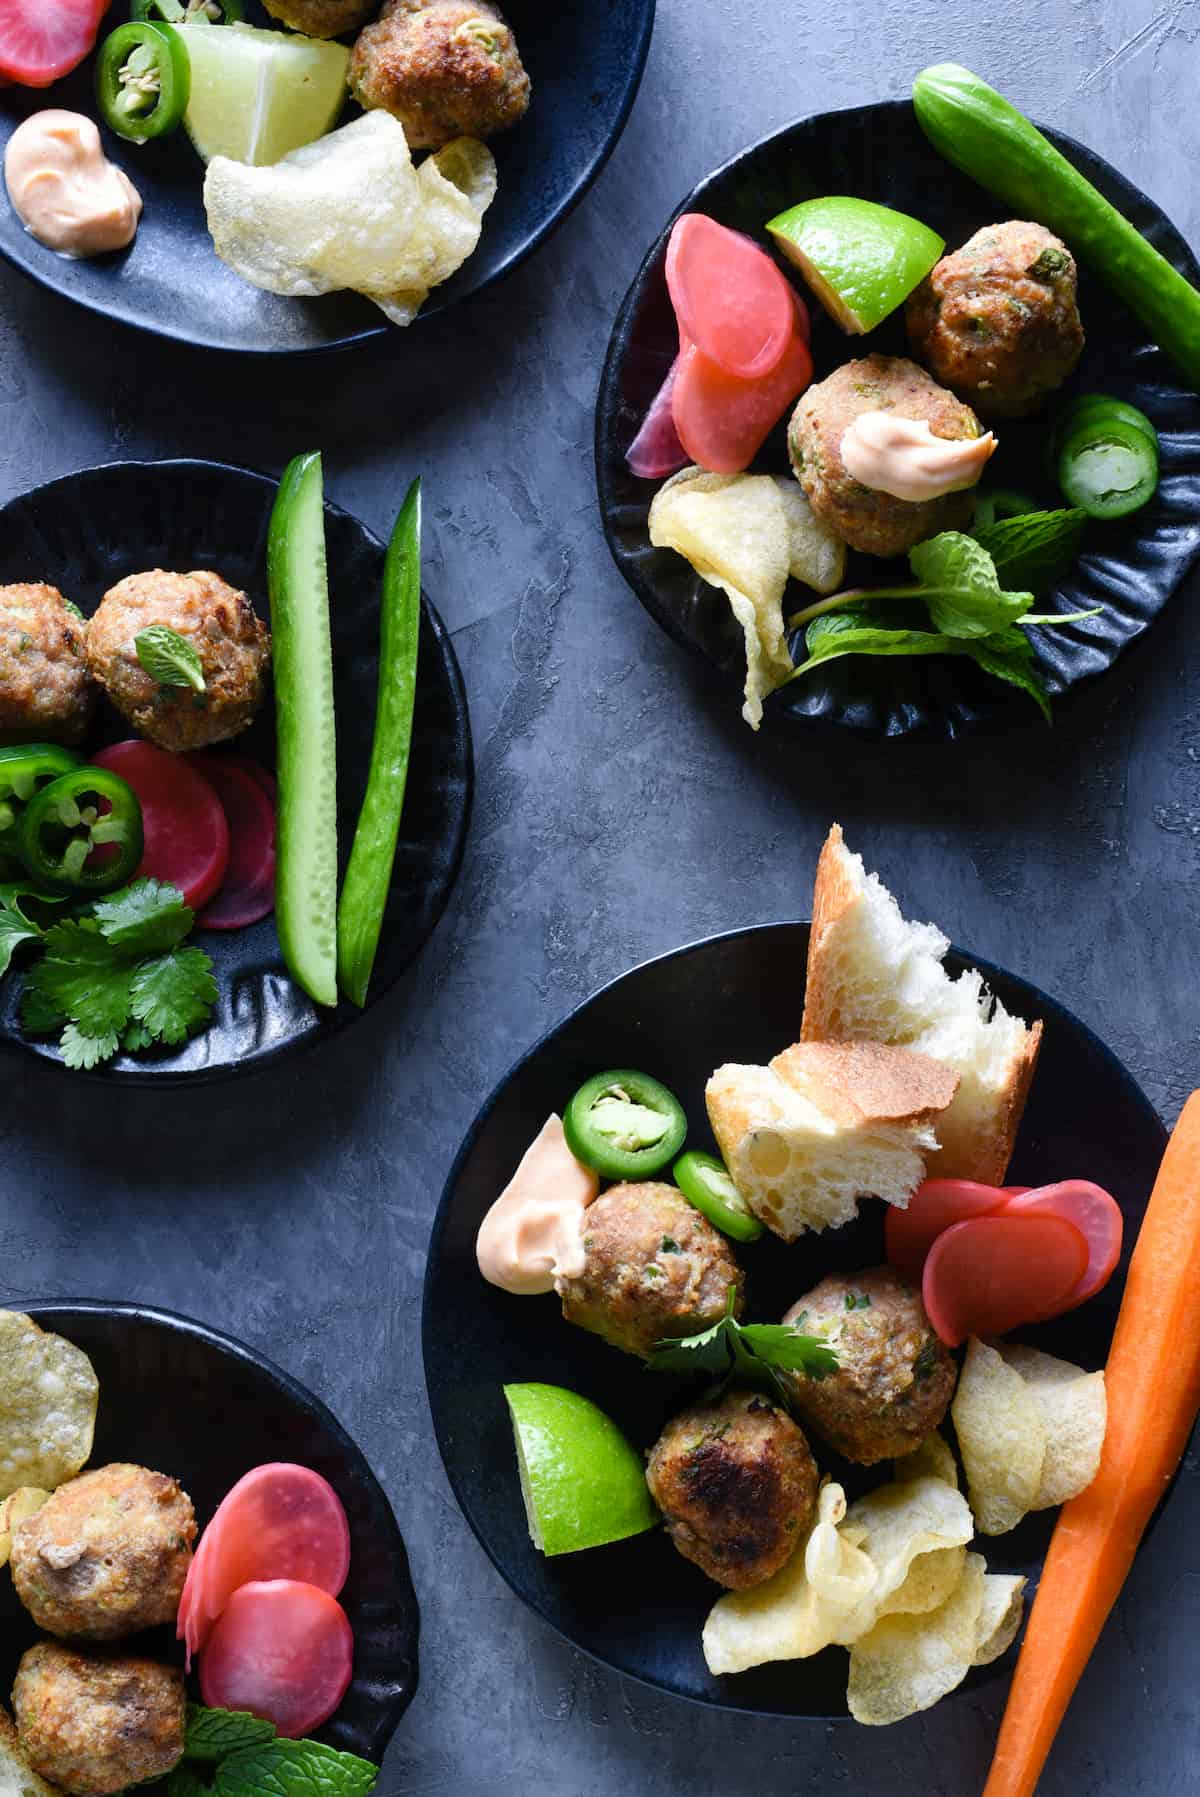 This Banh Mi Meatball Snack Dinner is a healthful platter of fresh ingredients that the whole family will love. Turkey meatballs, fresh and pickled veggies, bread, potato chips and dipping sauce - it's a fun meal that comes together easily. | foxeslovelemons.com